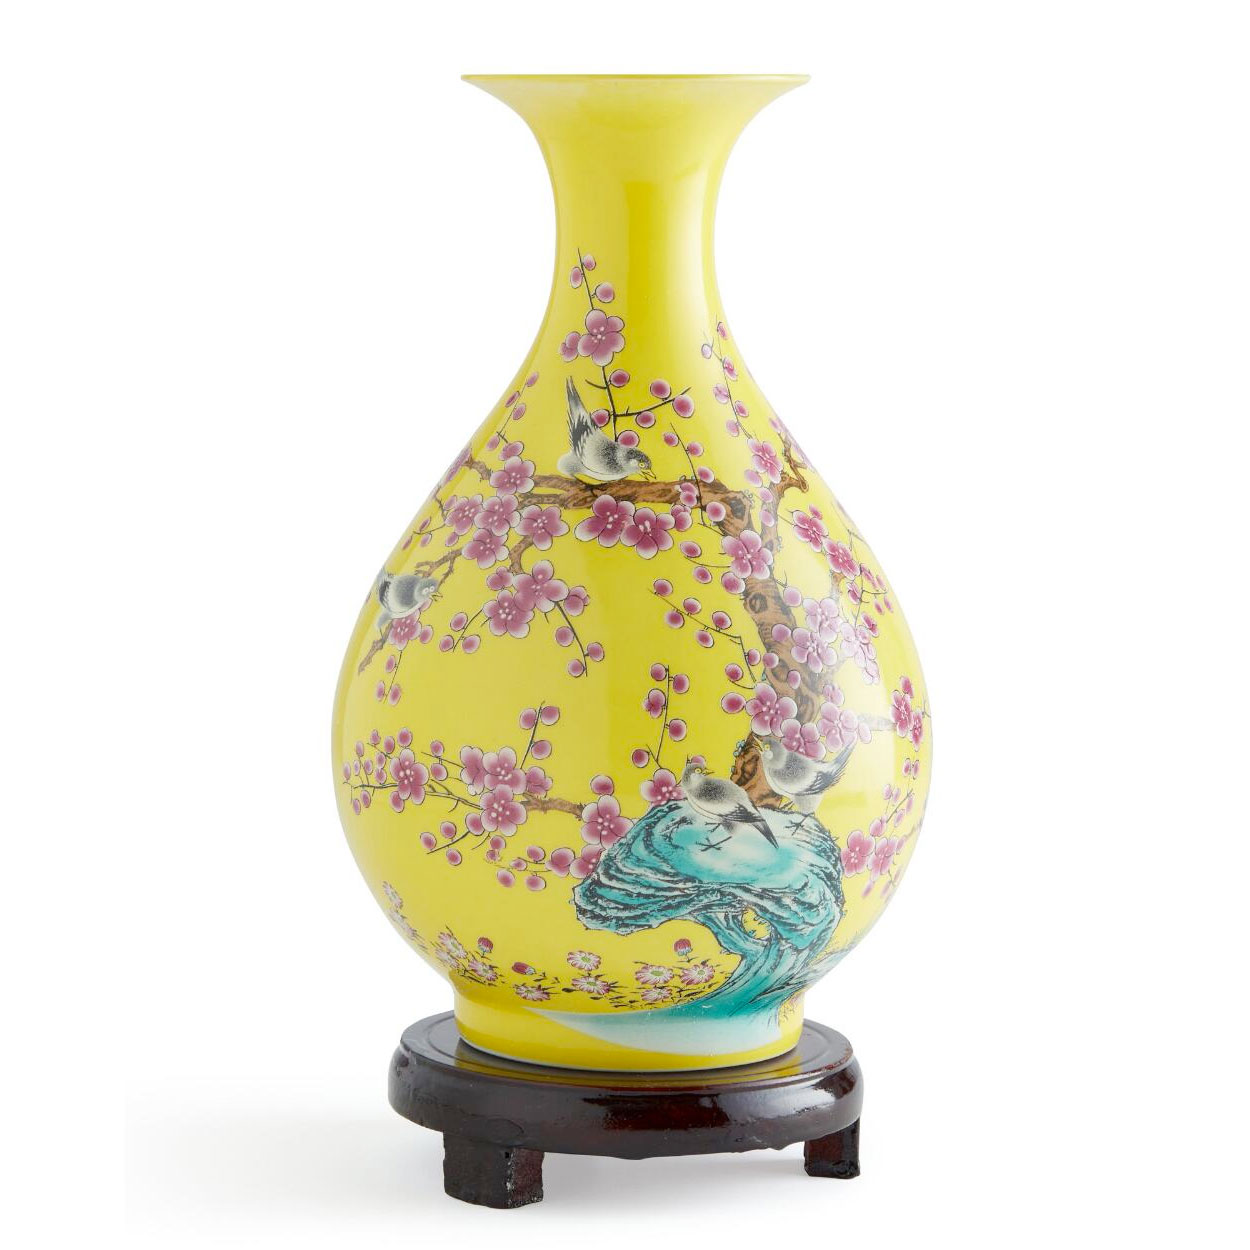 Half Hand-Painted Multi-Color Cherry Blossoms And Birds Vase With Wooden Stand